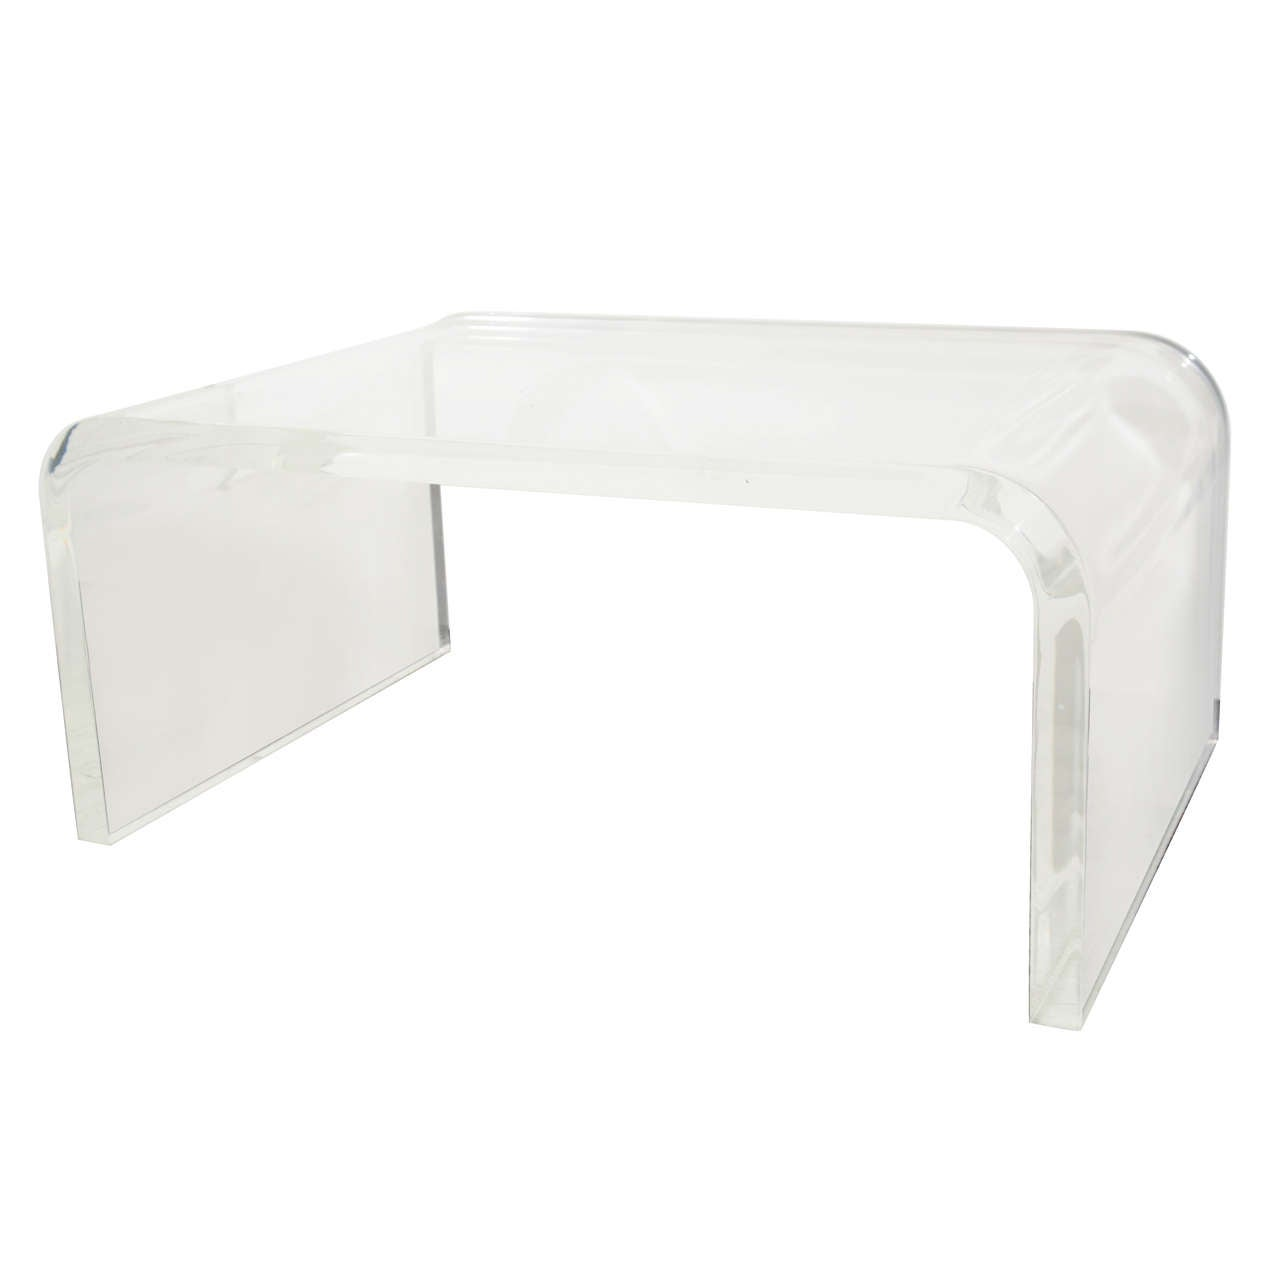 Design Lucite Coffee Table mid century thick lucite waterfall form coffee table at 1stdibs 1